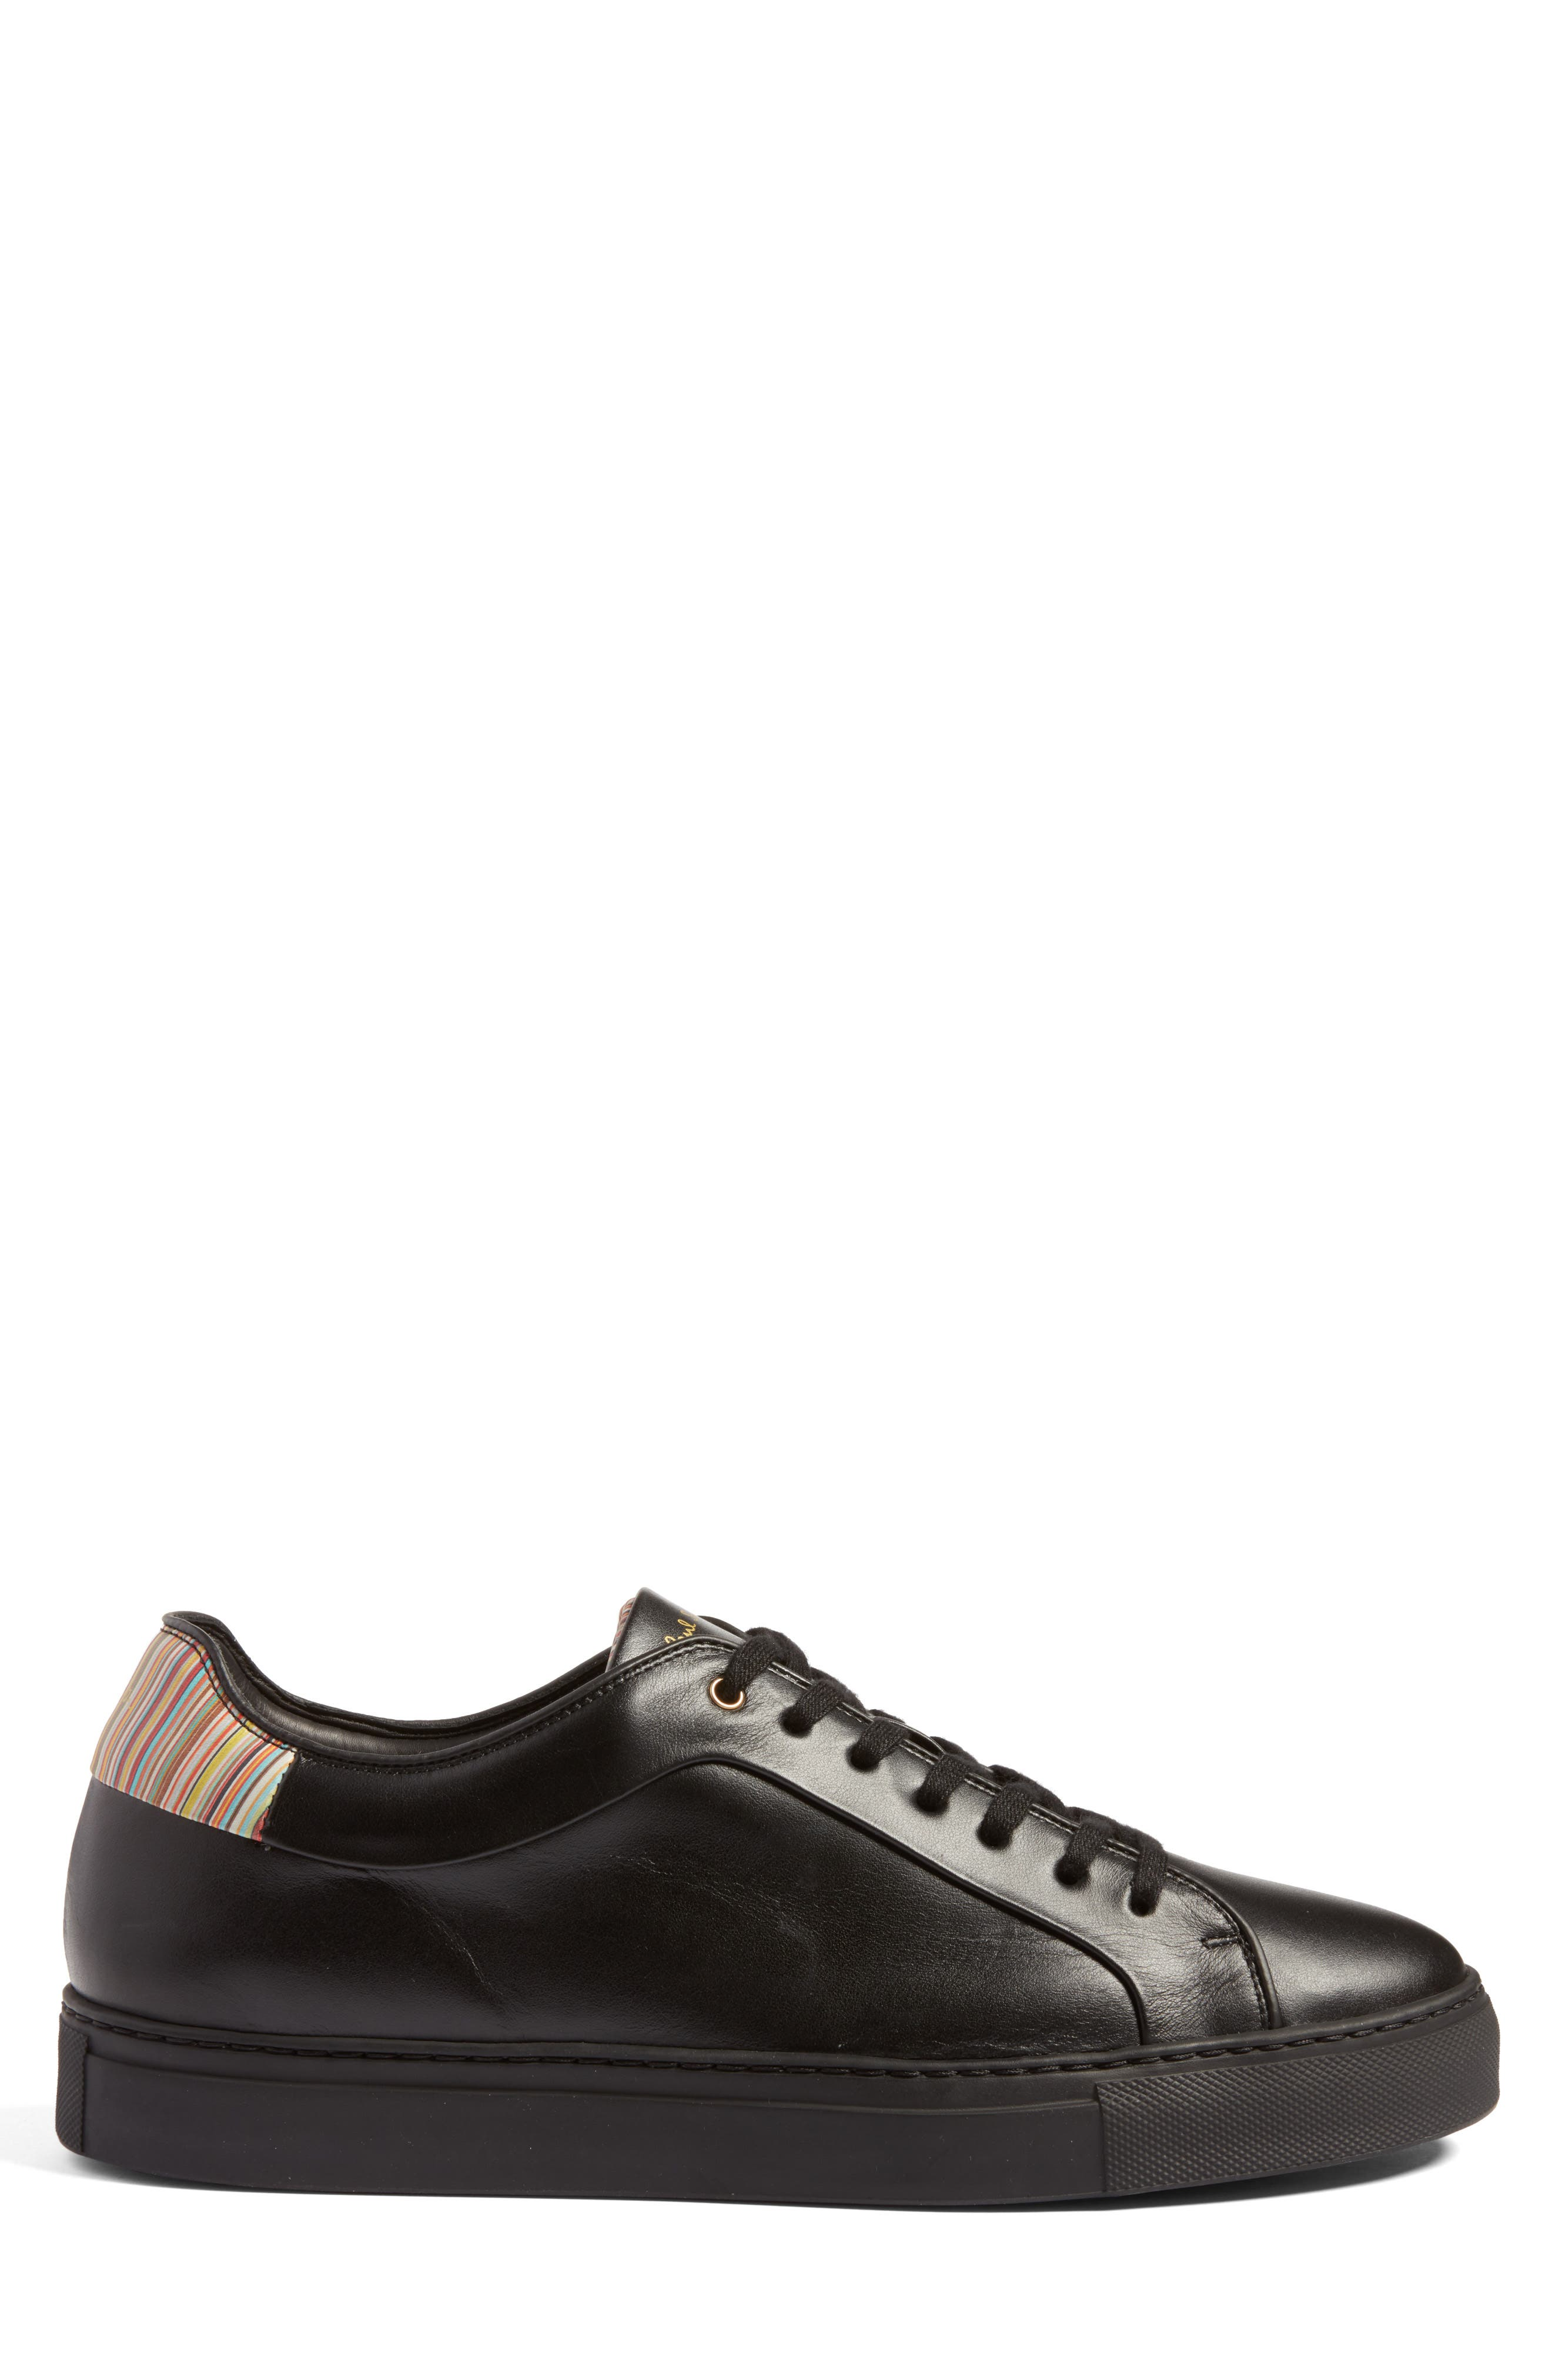 Alternate Image 3  - Paul Smith Basso Sneaker (Men)